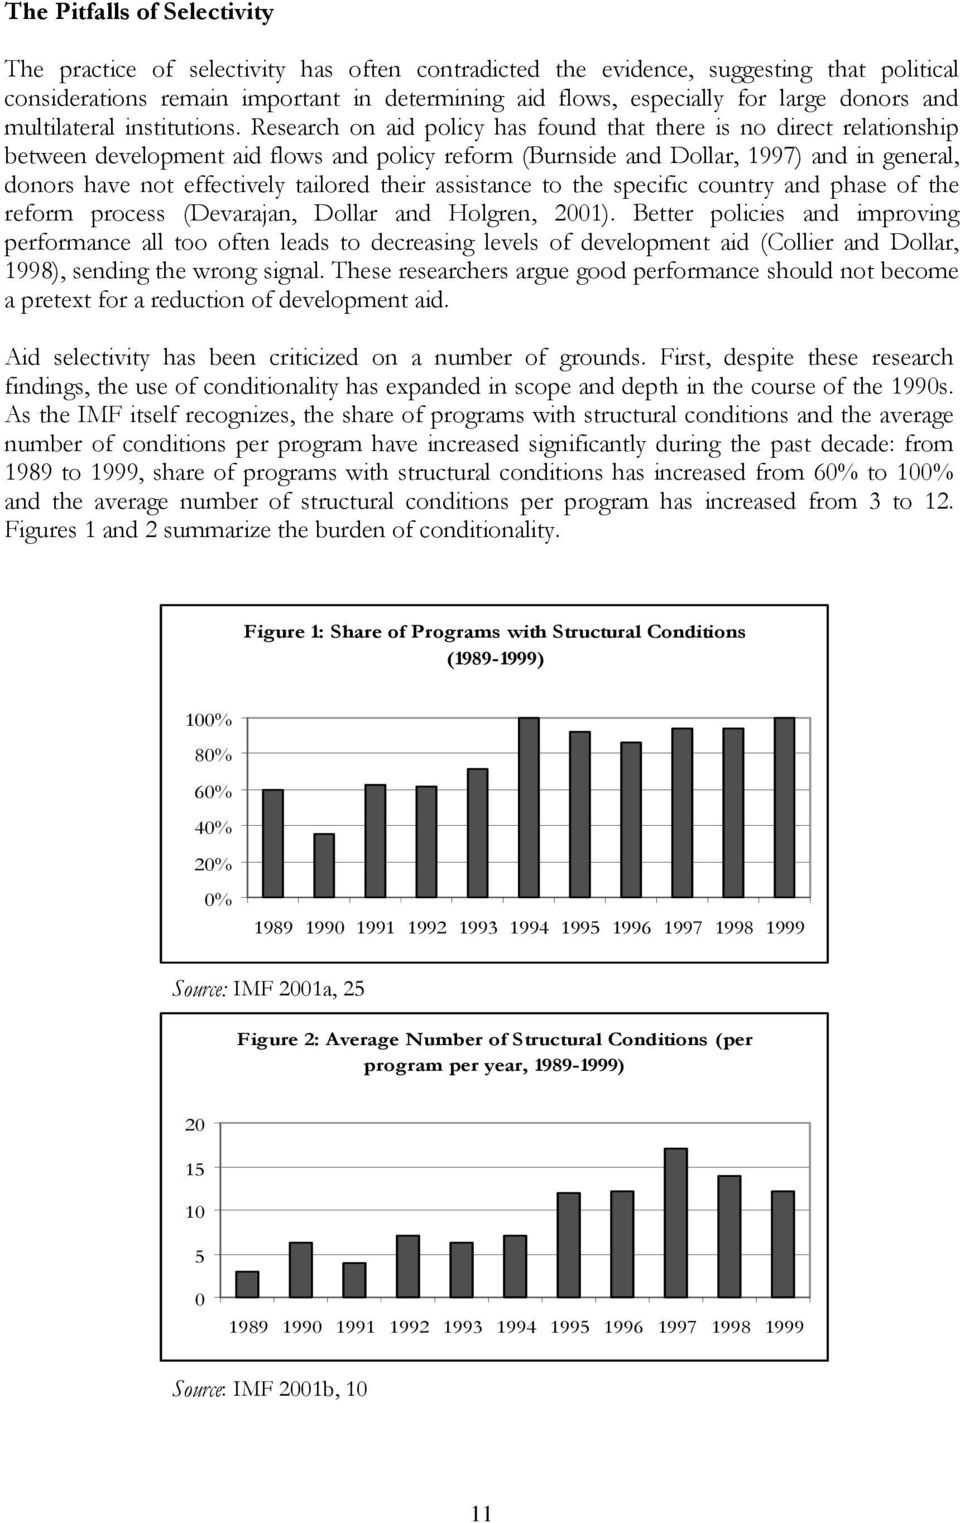 Research on aid policy has found that there is no direct relationship between development aid flows and policy reform (Burnside and Dollar, 1997) and in general, donors have not effectively tailored